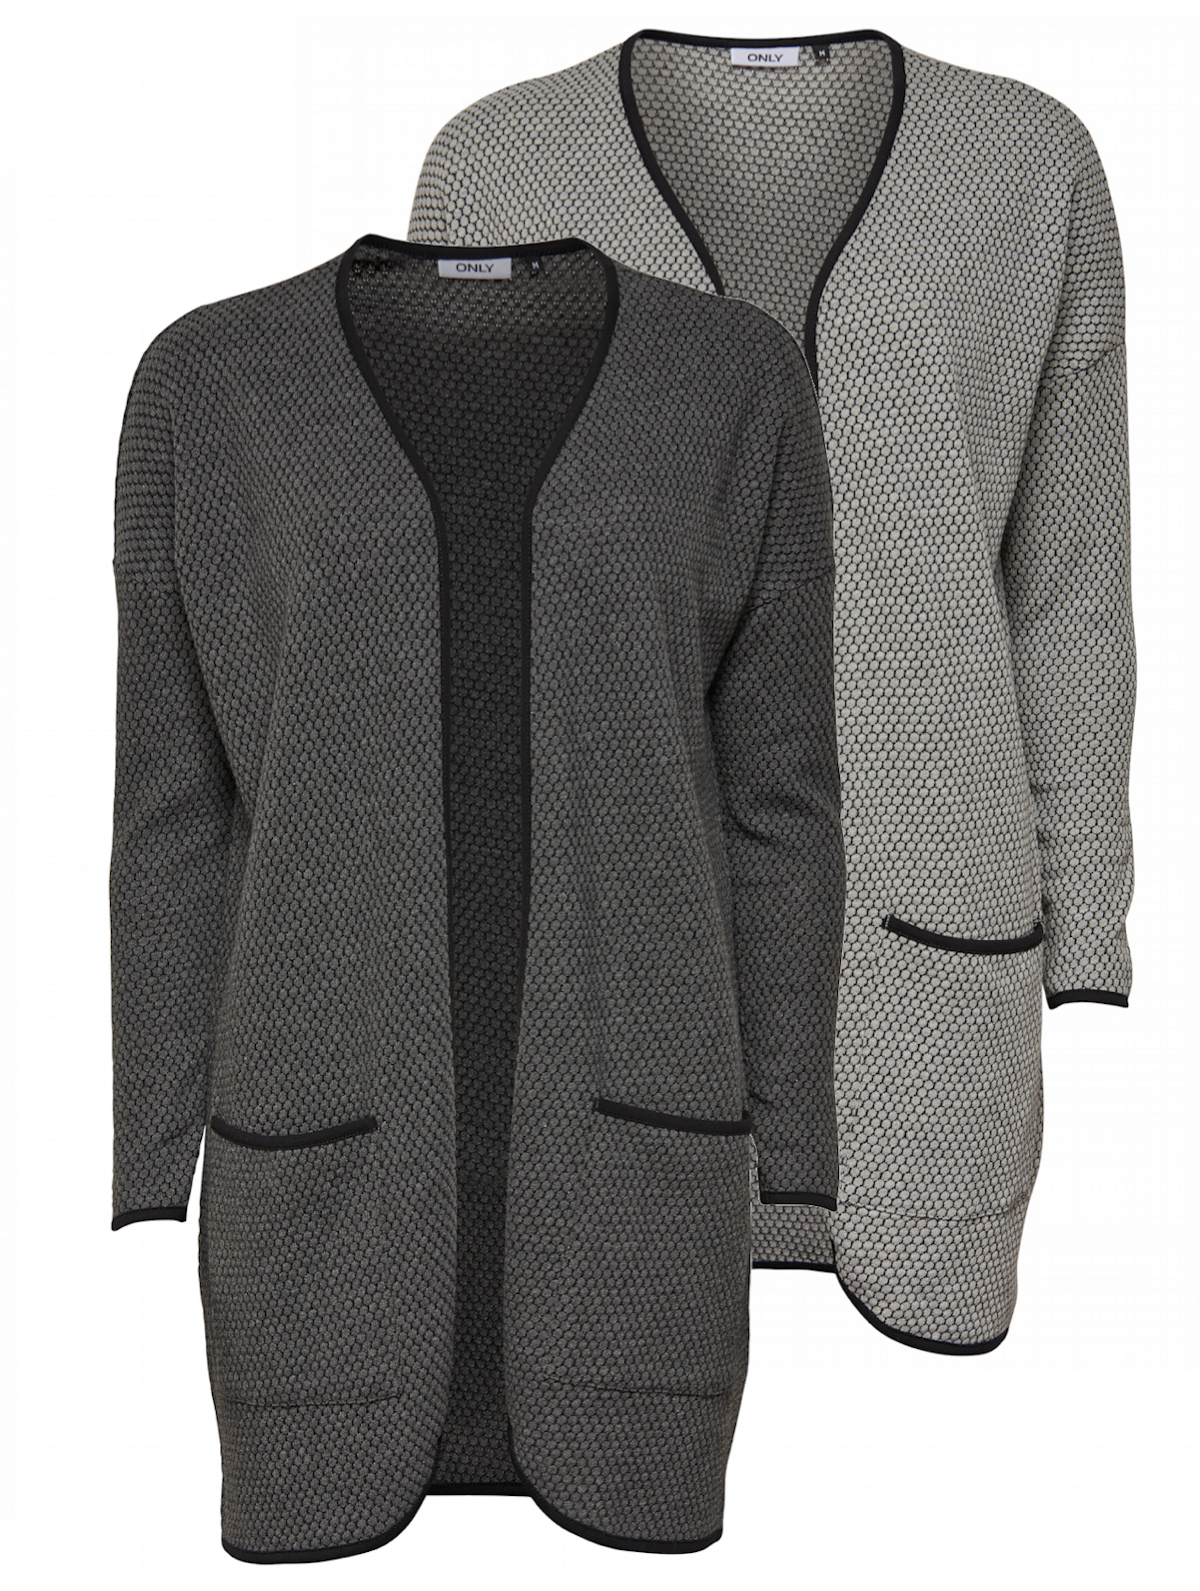 Only damen strickmantel cardigan lange strickjacke mantel for Oversize mantel damen